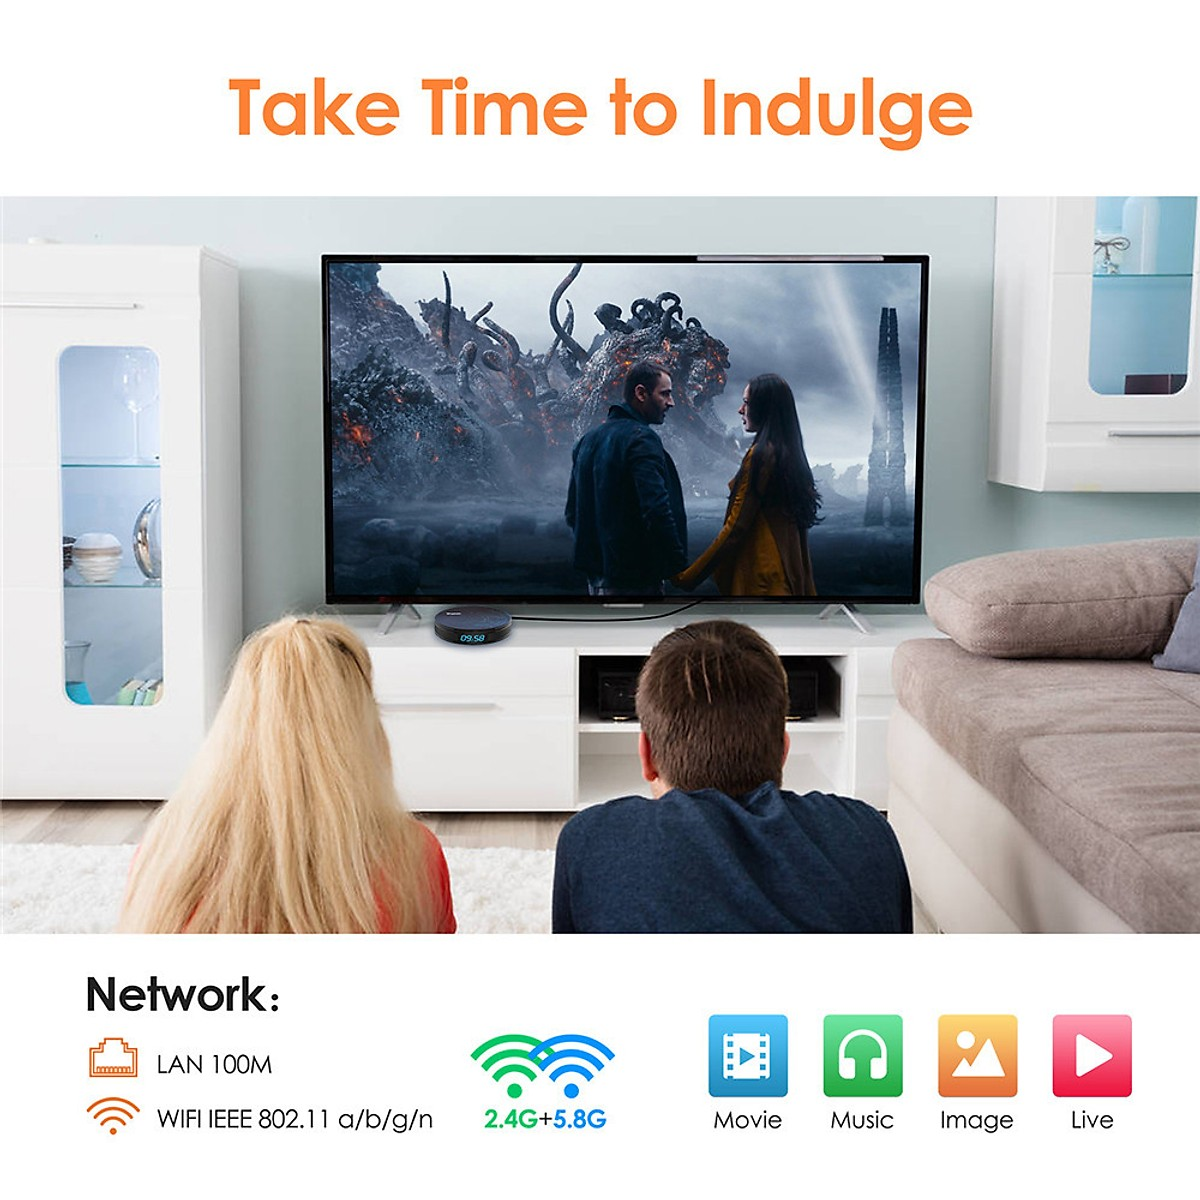 (Tặng chuột wireless cao cấp) Smart Box Hk1 S905X2 Chip Android 8.1 Dual-Frequency Wifi Network Player Tv Box Memory Capacity:4G+32G Specification